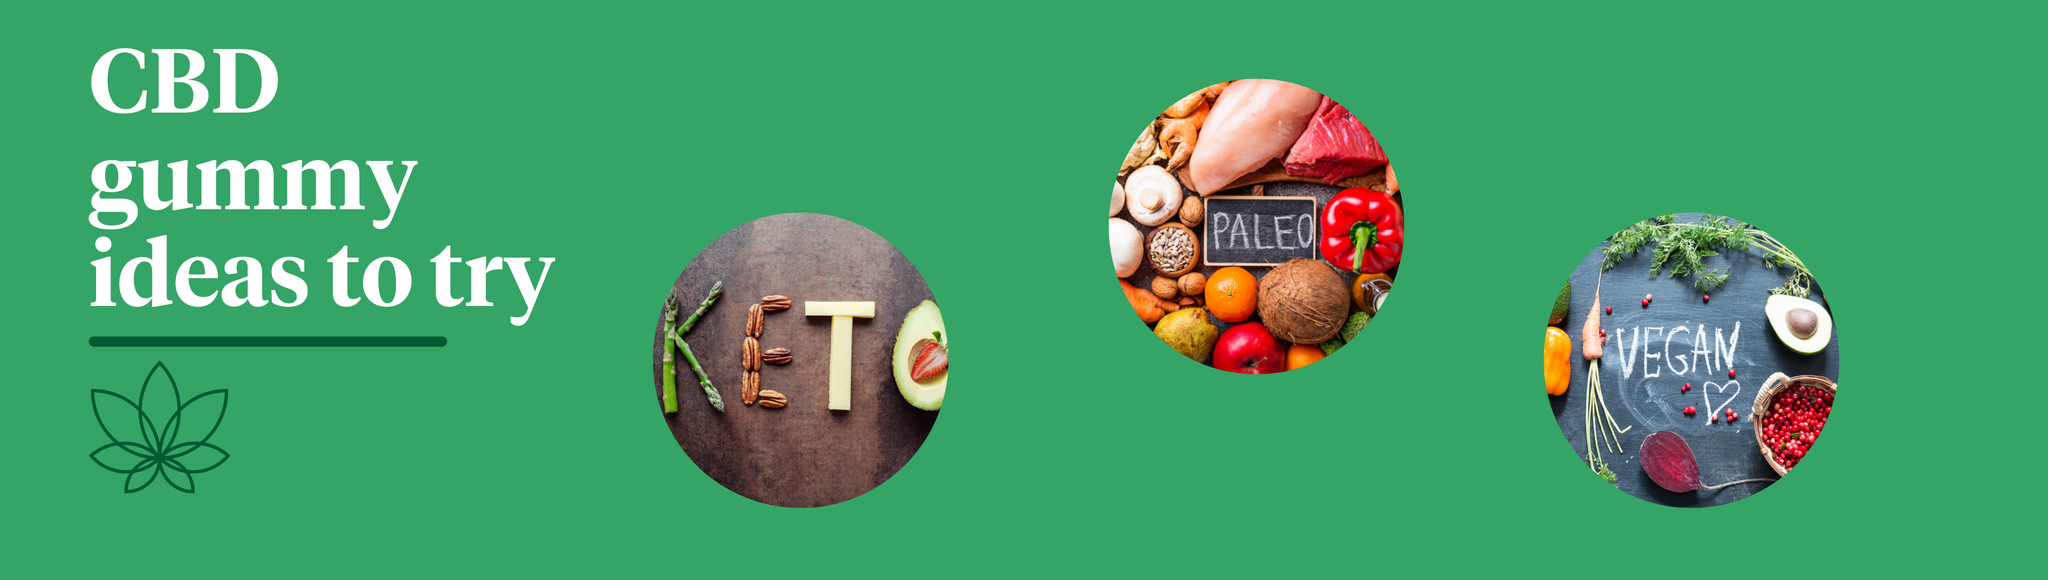 """A green background with the Supreme CBD logo with white text above saying """"CBD Gummy Ideas to Try"""". 3 images shown on the left of 'keto' 'paleo' and 'vegan'."""